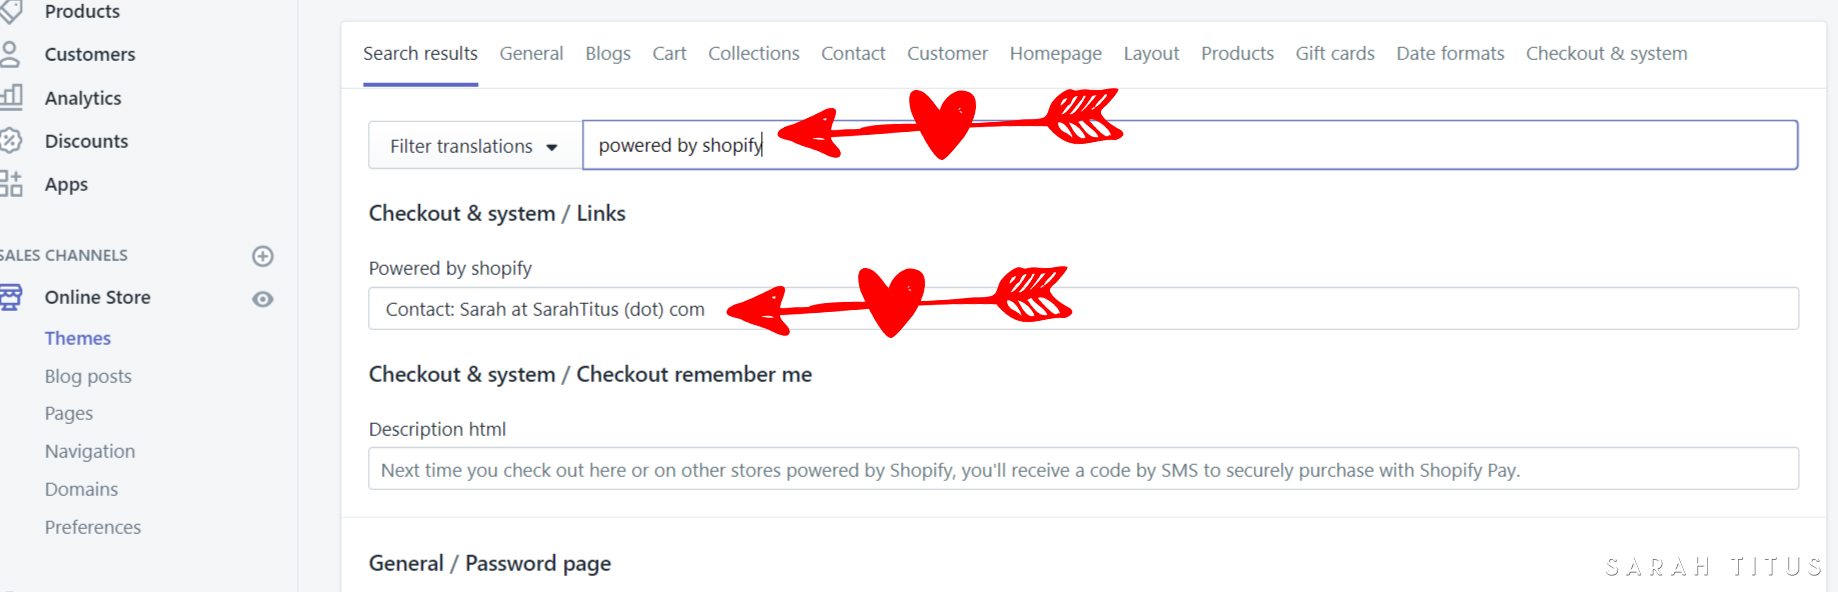 """Does the """"Powered by Shopify"""" byline bug you? It bugged me too. Here's a step by step guide of how to remove it. Trust me, it's super duper simple!"""